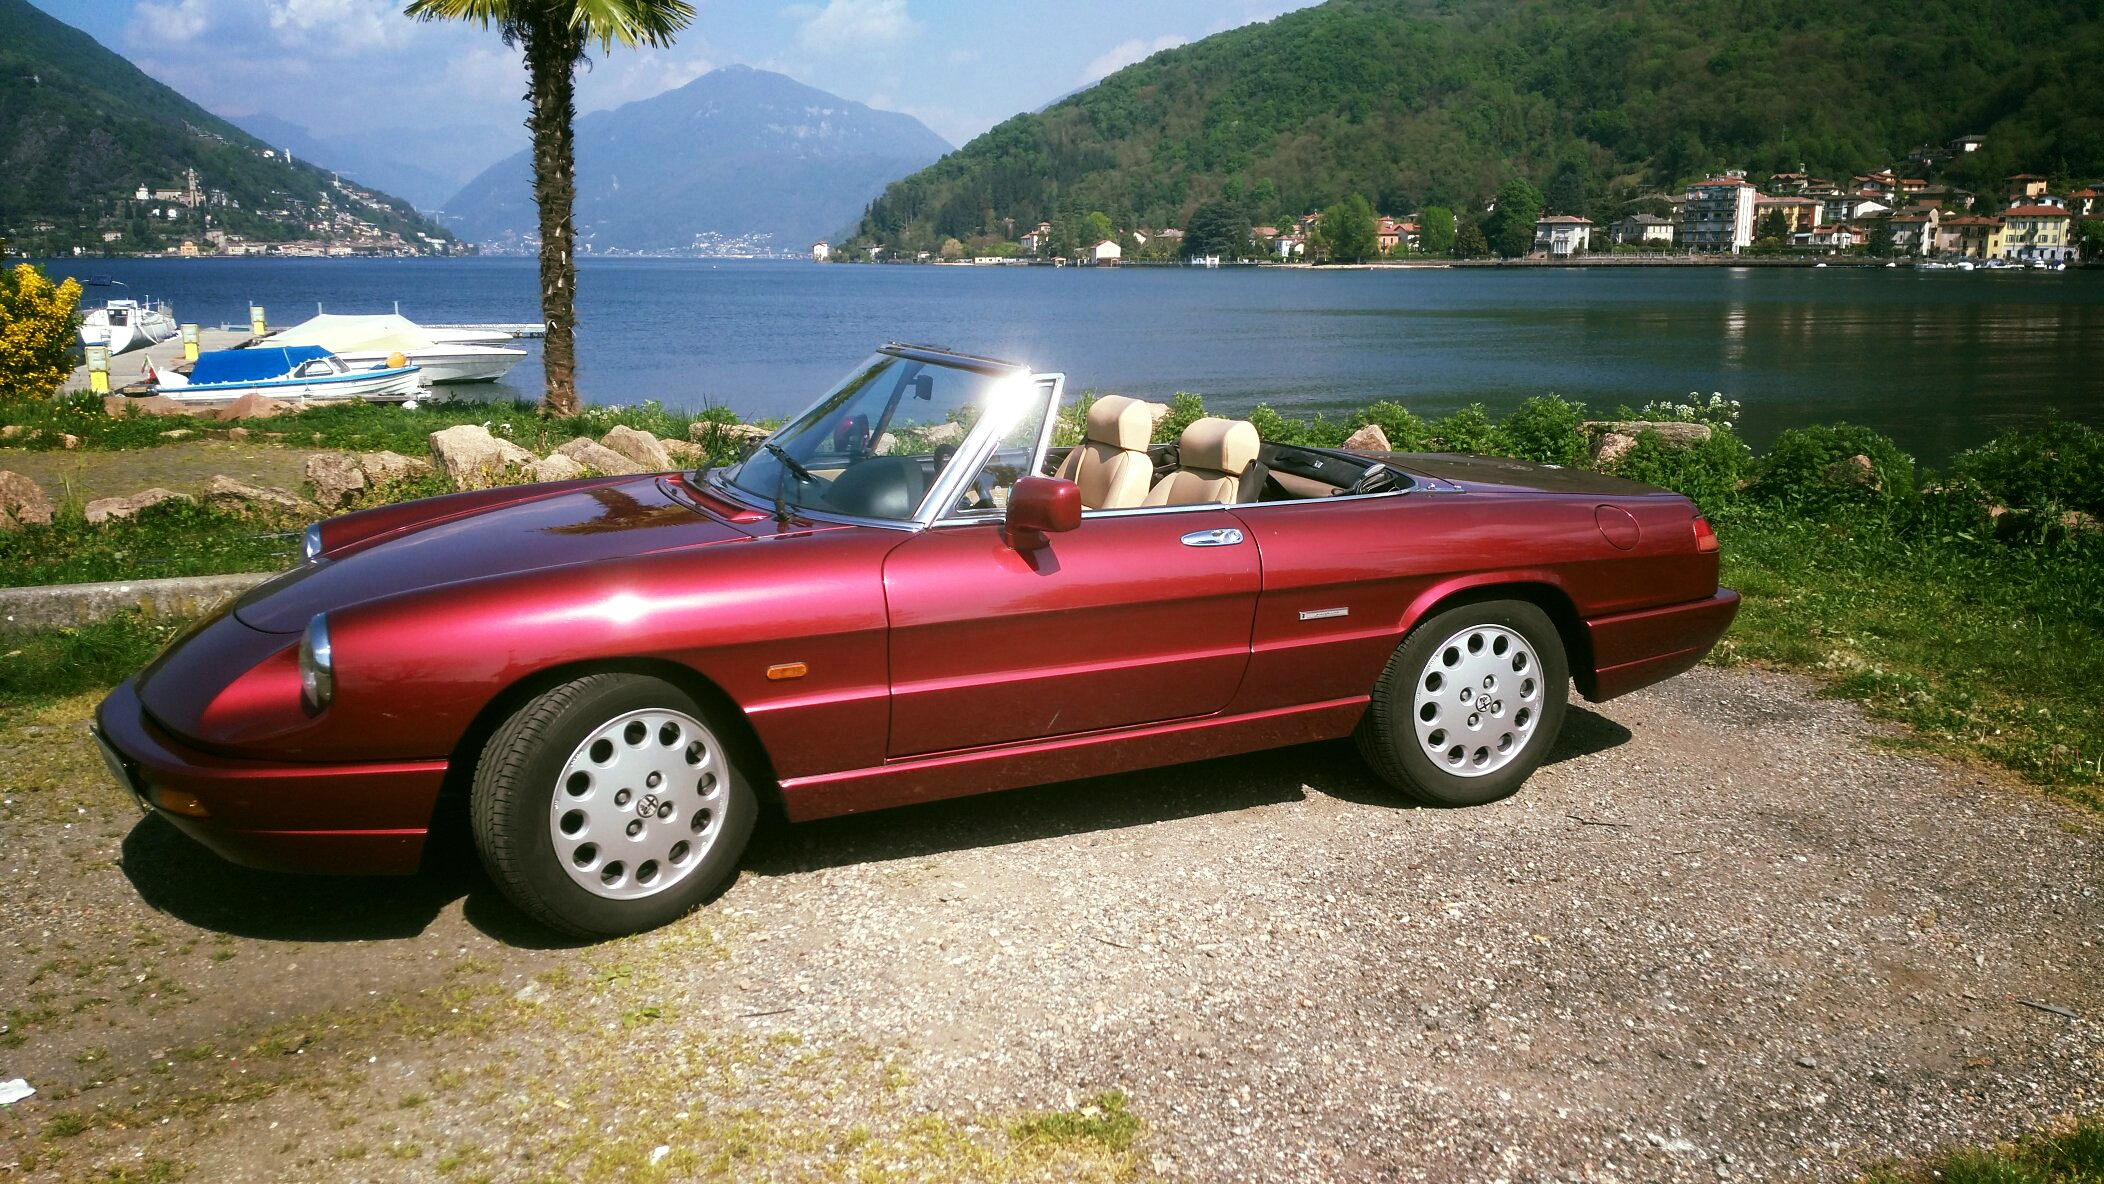 Classic Rental Cars: The Finest Way To Drive in Italy.